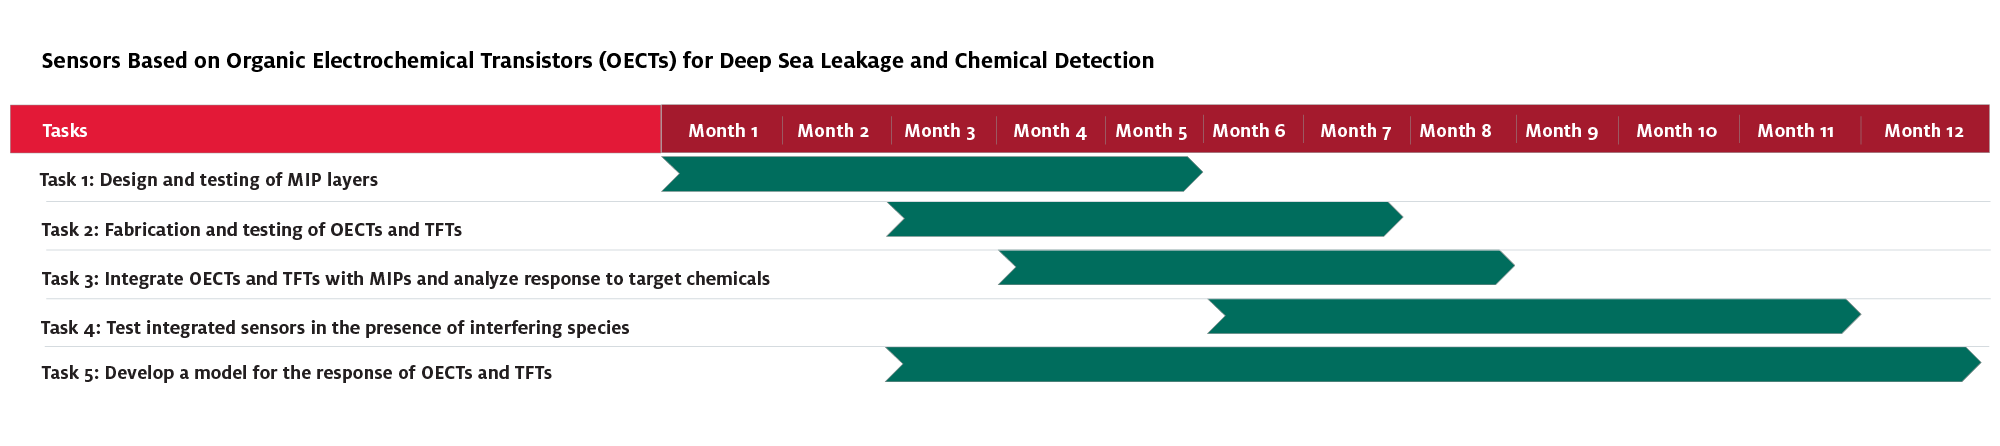 Gannt Chart - Sensors Based on Organic Electrochemical Transistors (OECTs) for Deep Sea Leakage and Chemical Detection